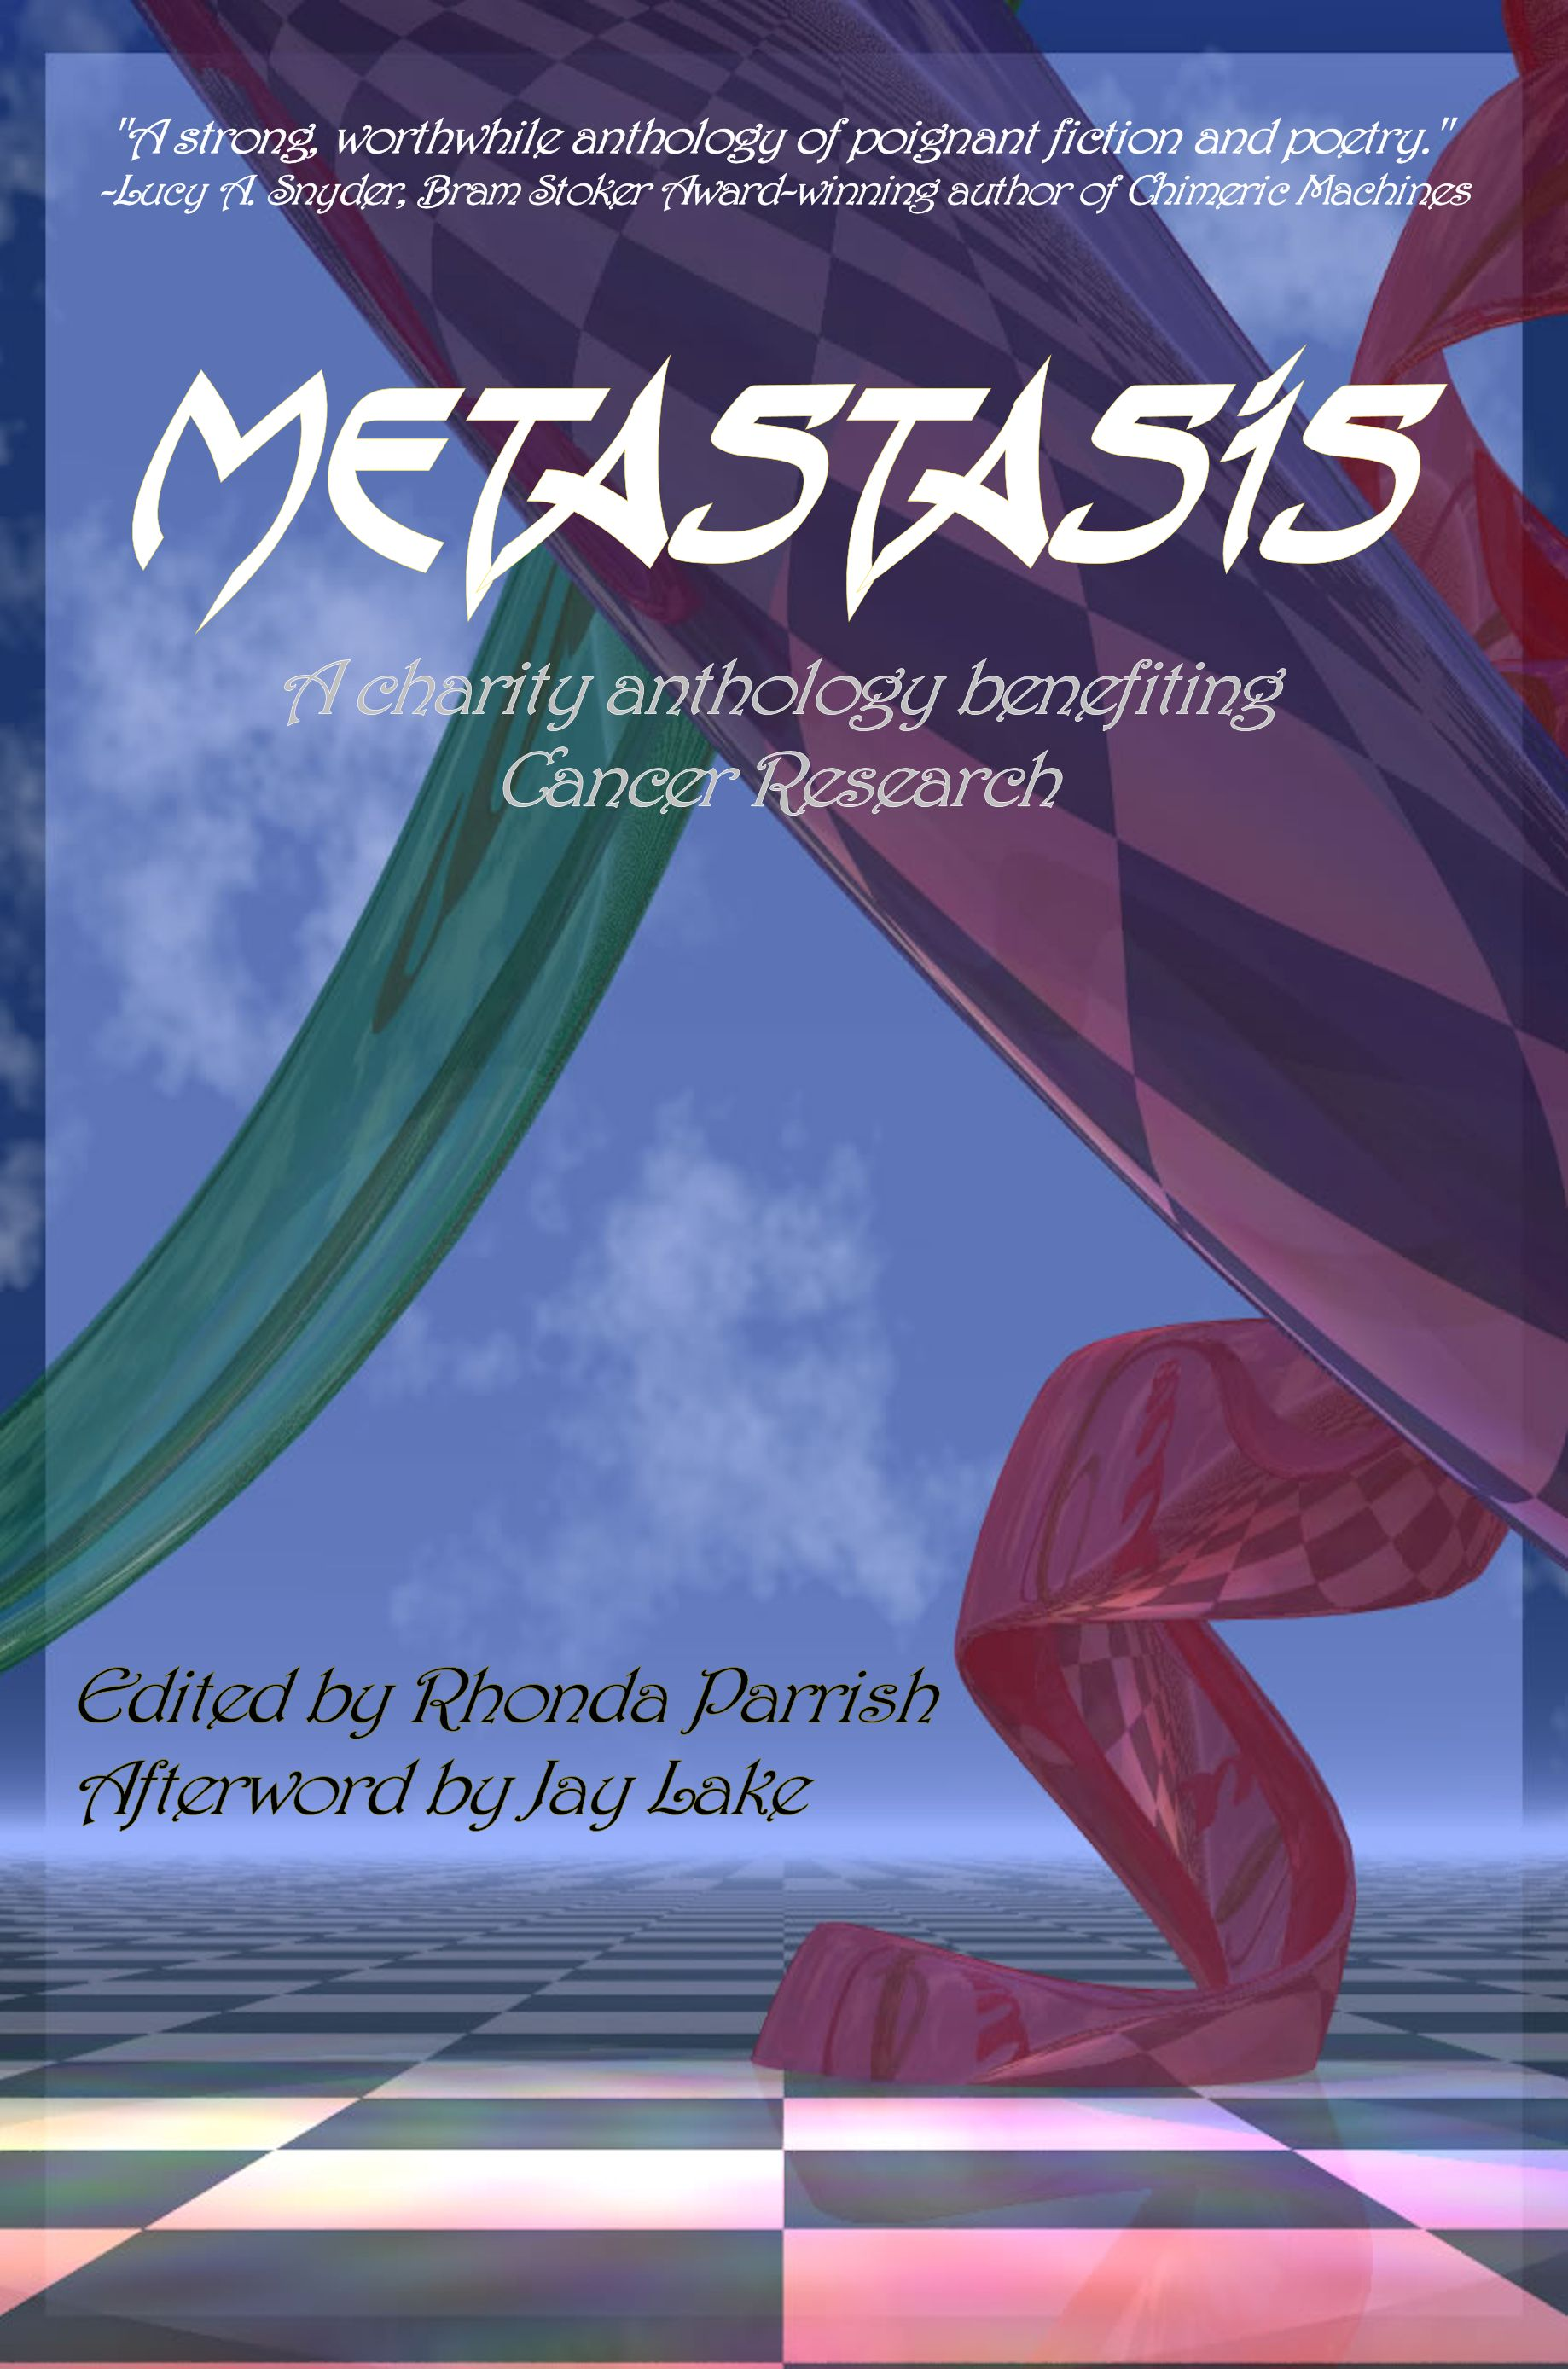 Metastasis Cover - artwork by Jonathan Parrish, Cover design by Carol Hightshoe